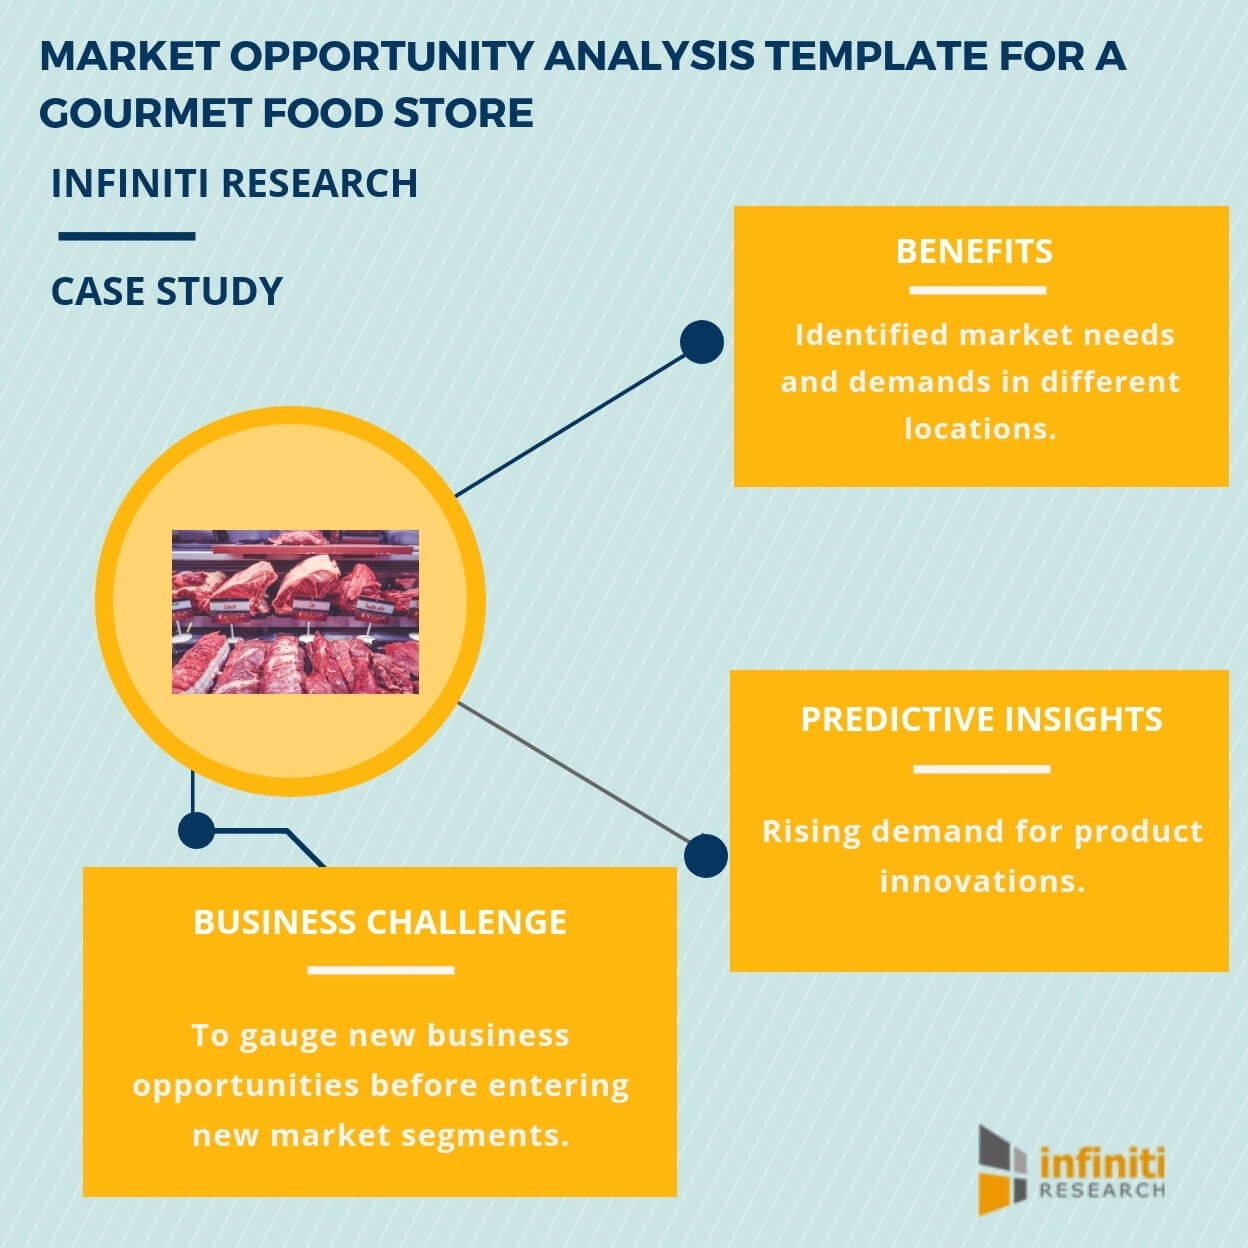 Identifying Investment Opportunities With The Help Of A Inside Business Opportunity Assessment Template